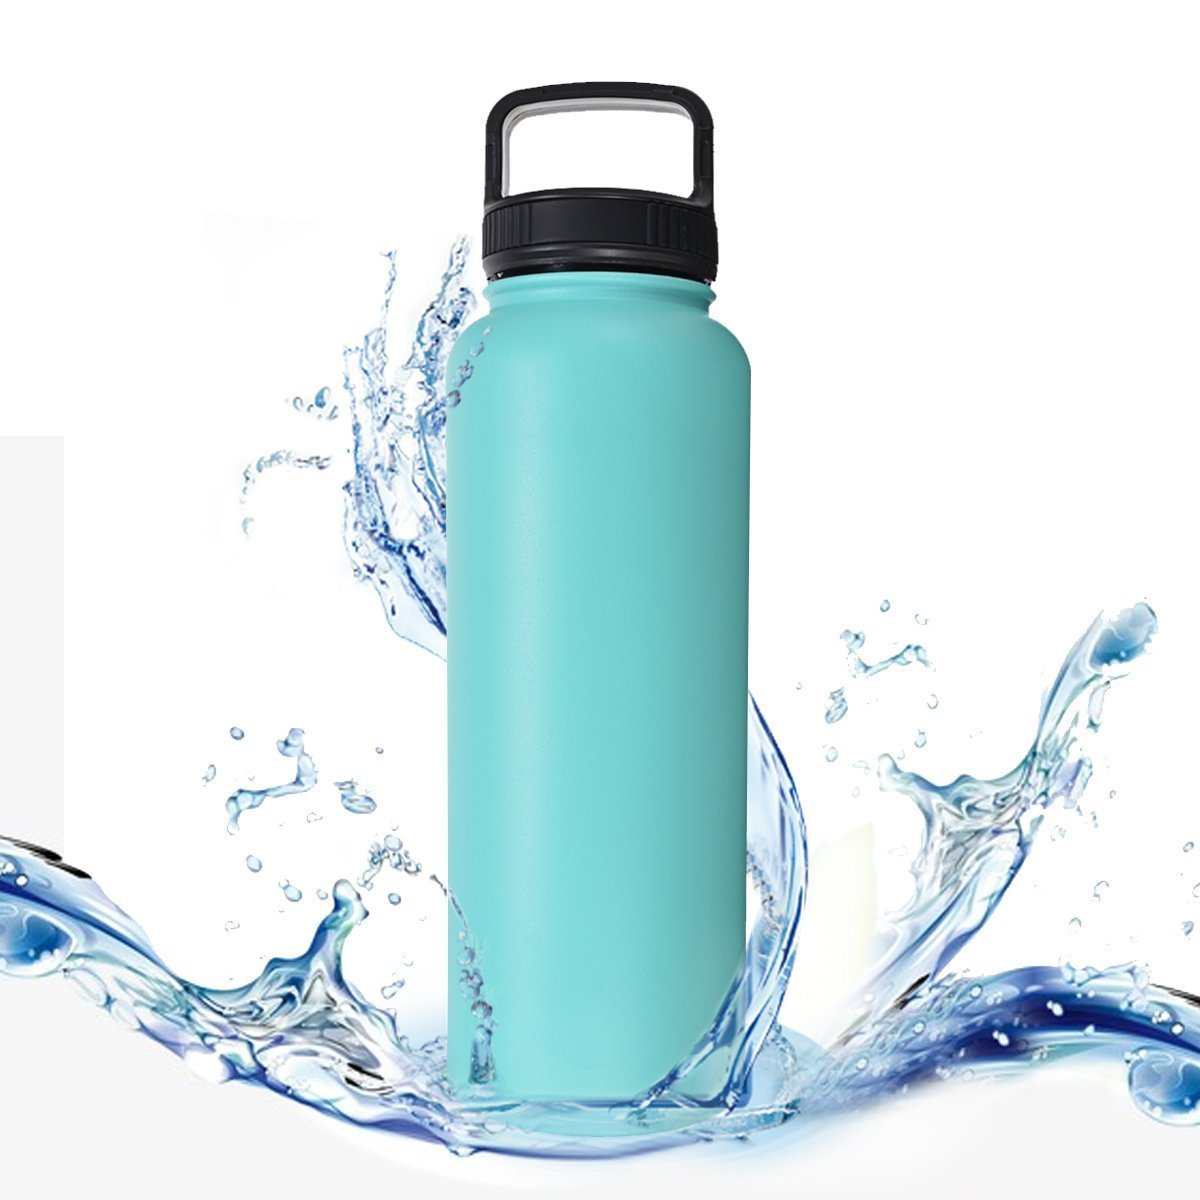 40OZ/1200ML Stainless Steel Insulated Water Bottle Vacuum Flasks Coffee Travel Mug Termo Thermal Cup Tumbler Thermos Bottle